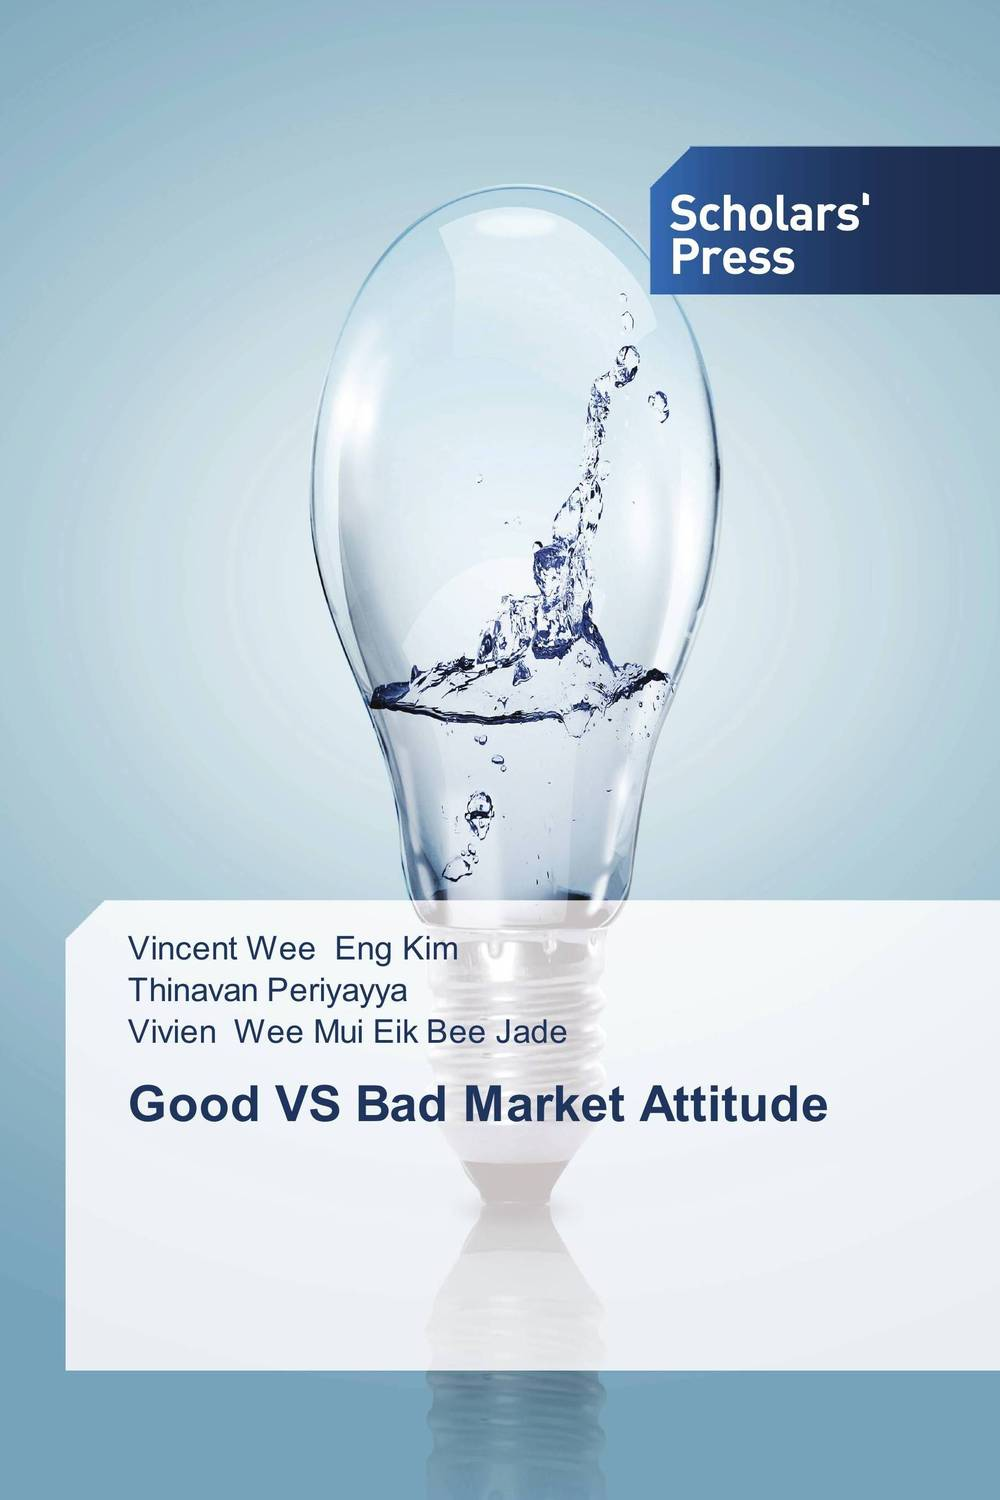 Good VS Bad Market Attitude seeing things as they are